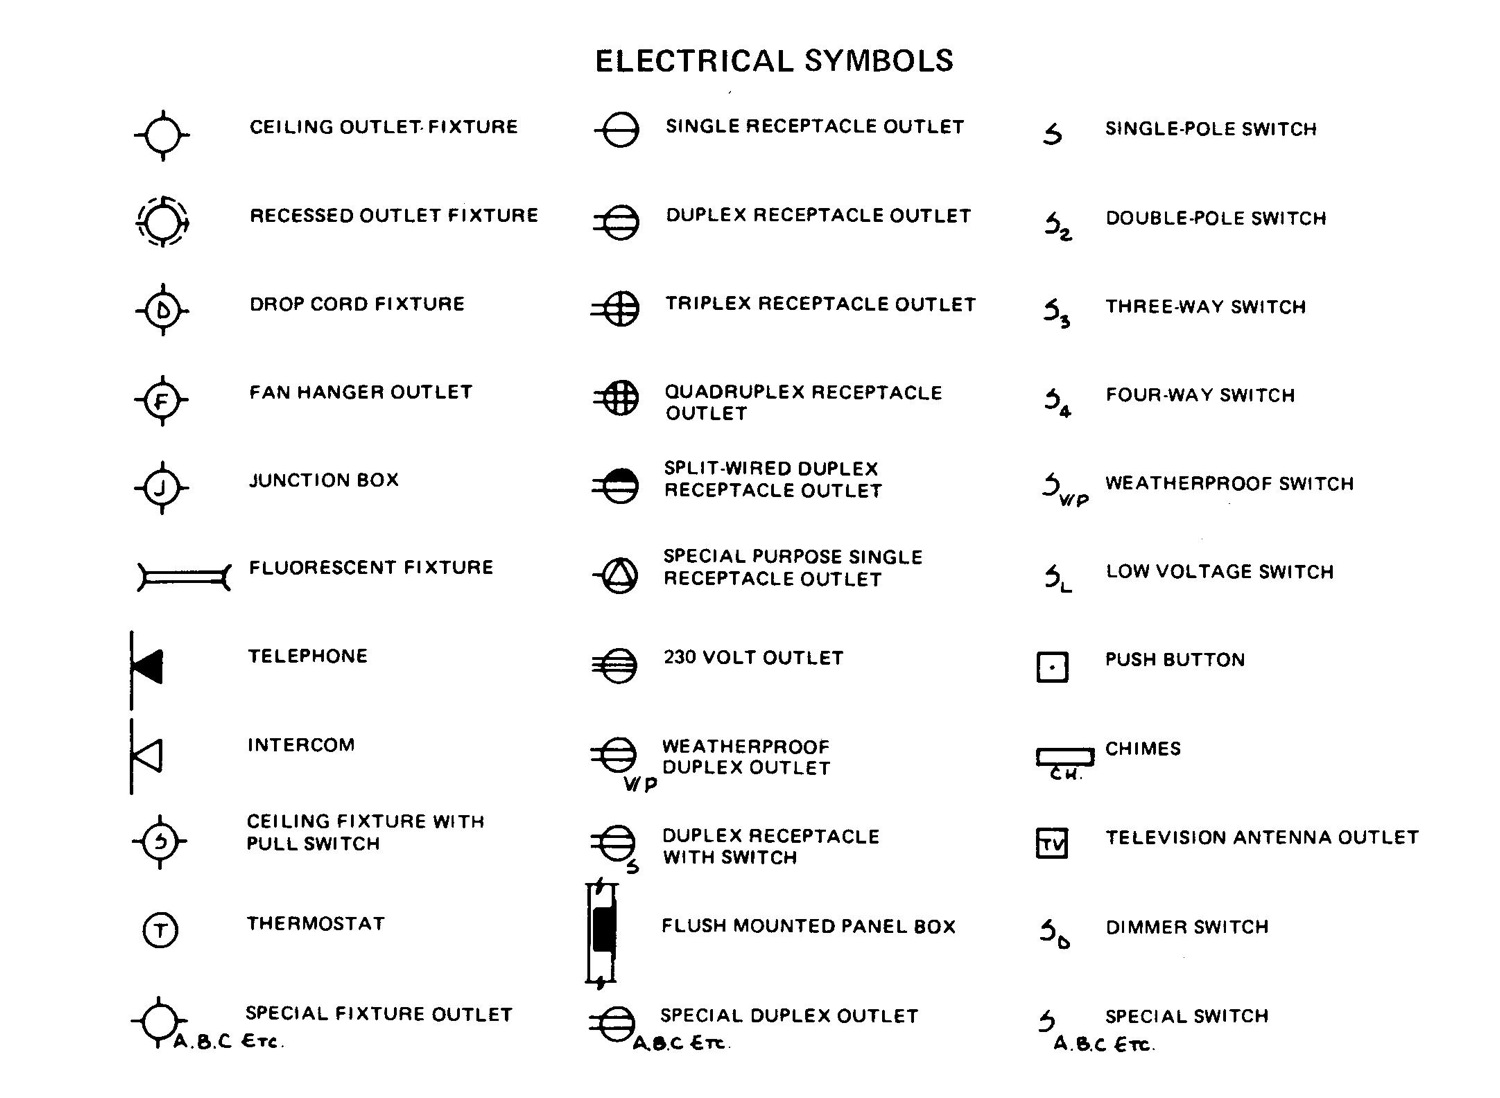 Electrical Symbols Gfci Breaker Guide And Troubleshooting Of Circuit Symbol Rough Electric Wholesteading Com Disconnect Handle Breakers Types